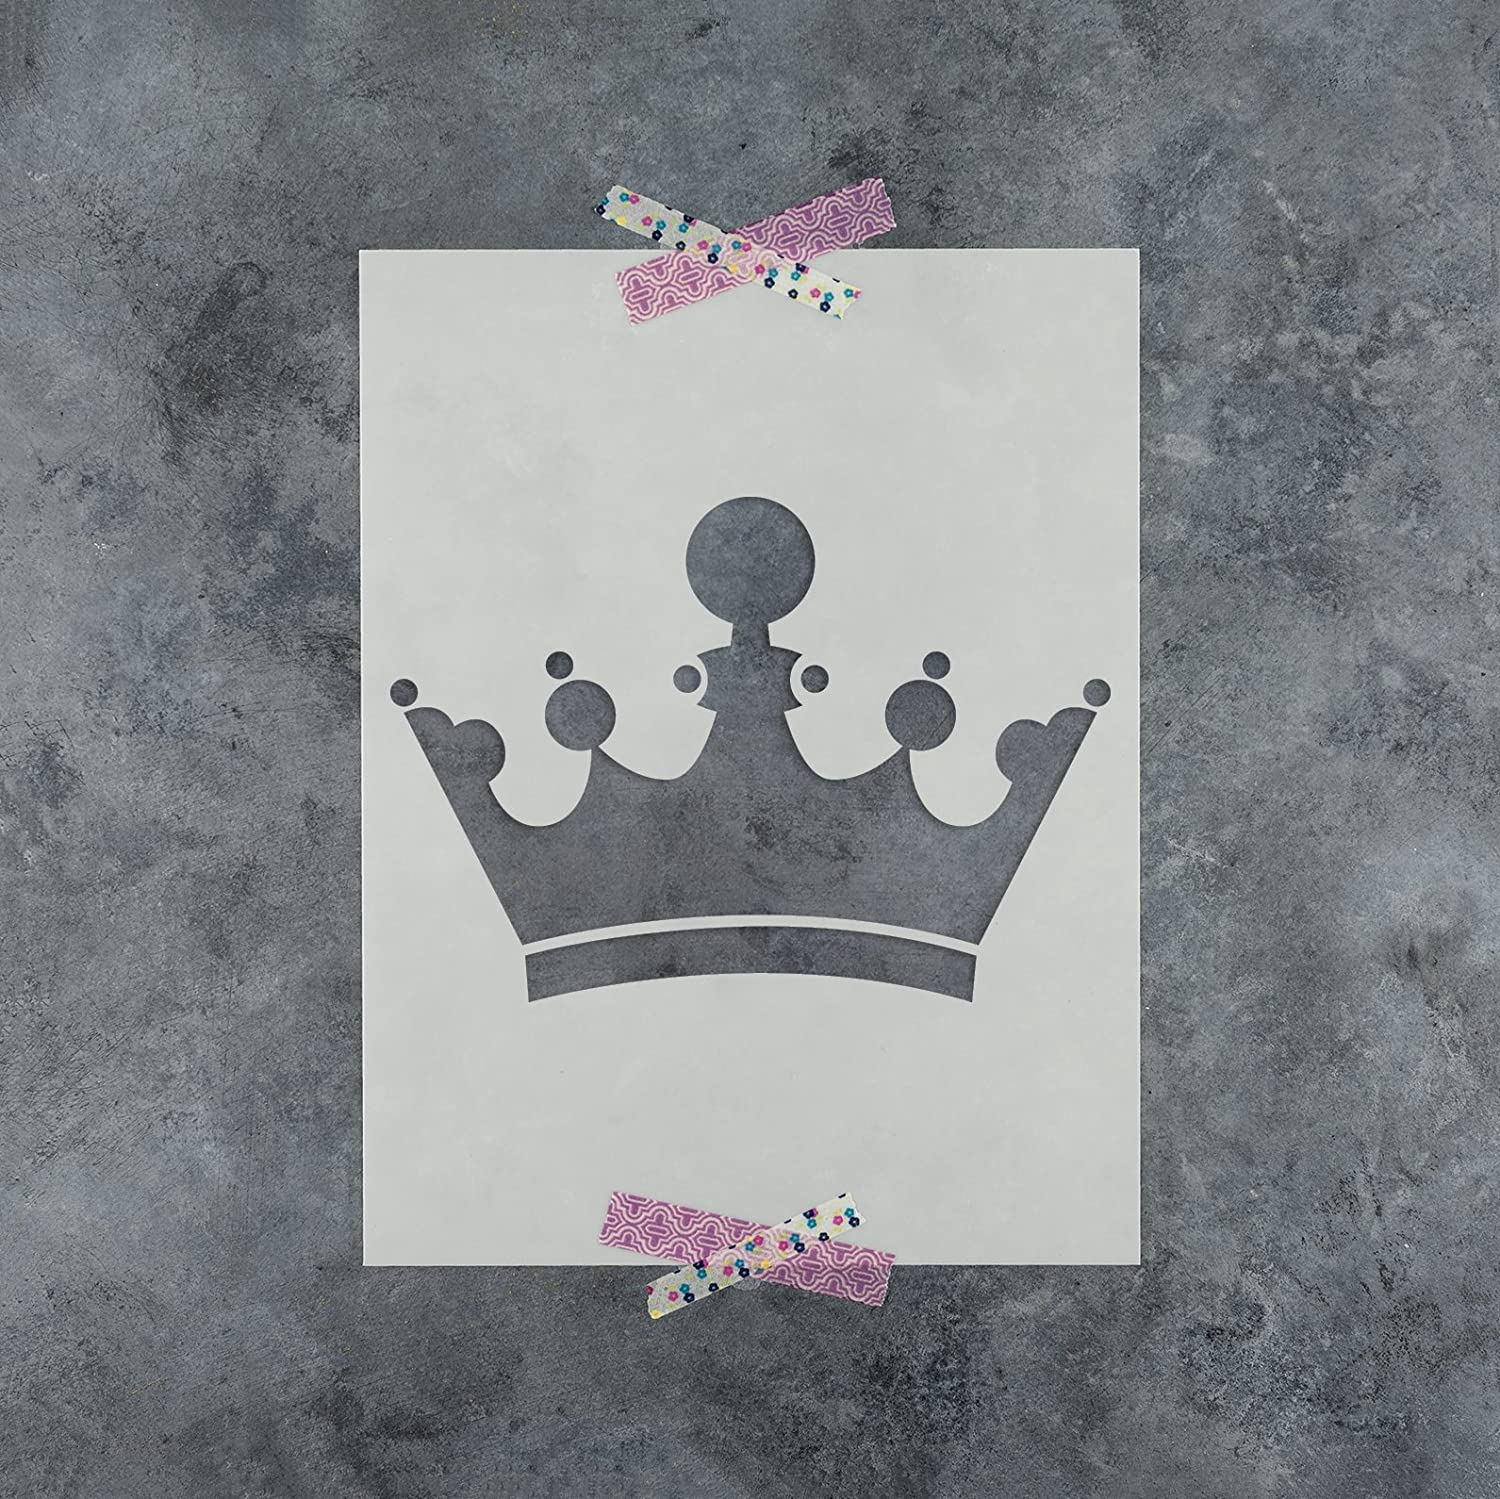 Amazon.com: King Crown Stencil Template - Reusable Stencil with ...